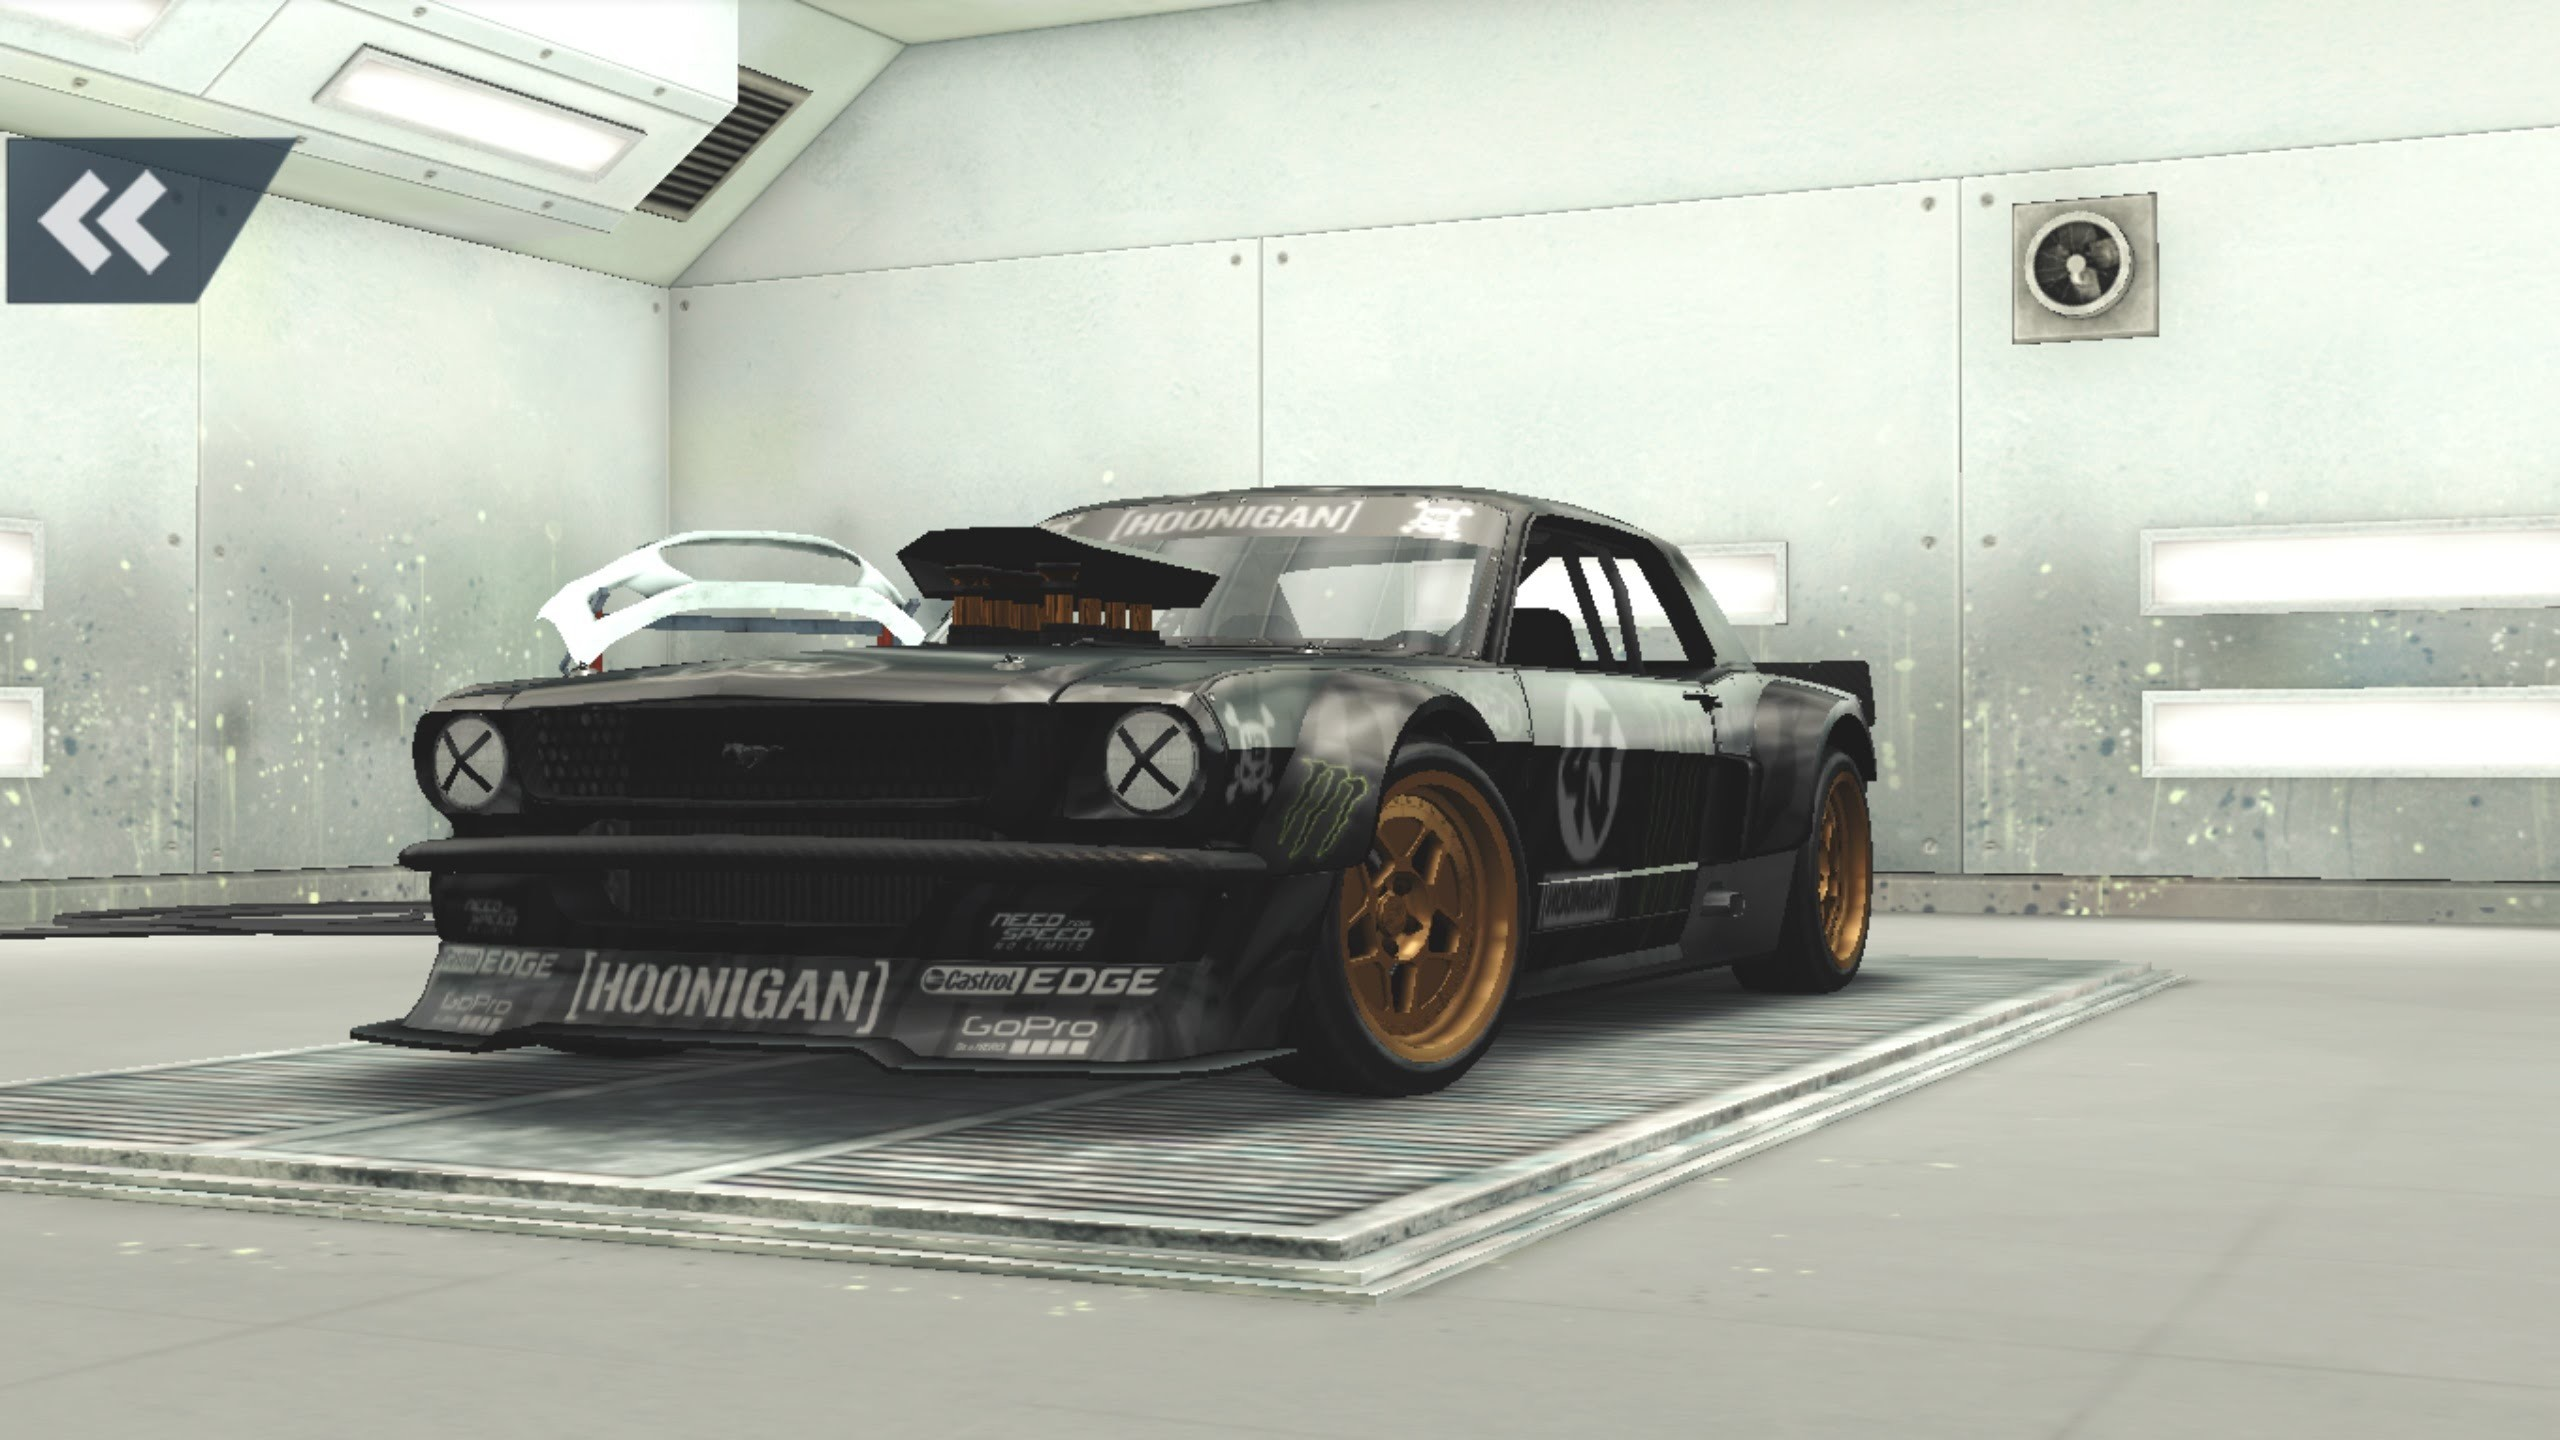 2560x1440 NEED FOR SPEED NO LIMITS HOONIGAN SERIES CHAPTER 3 FORD MUSTANG HOONICORN